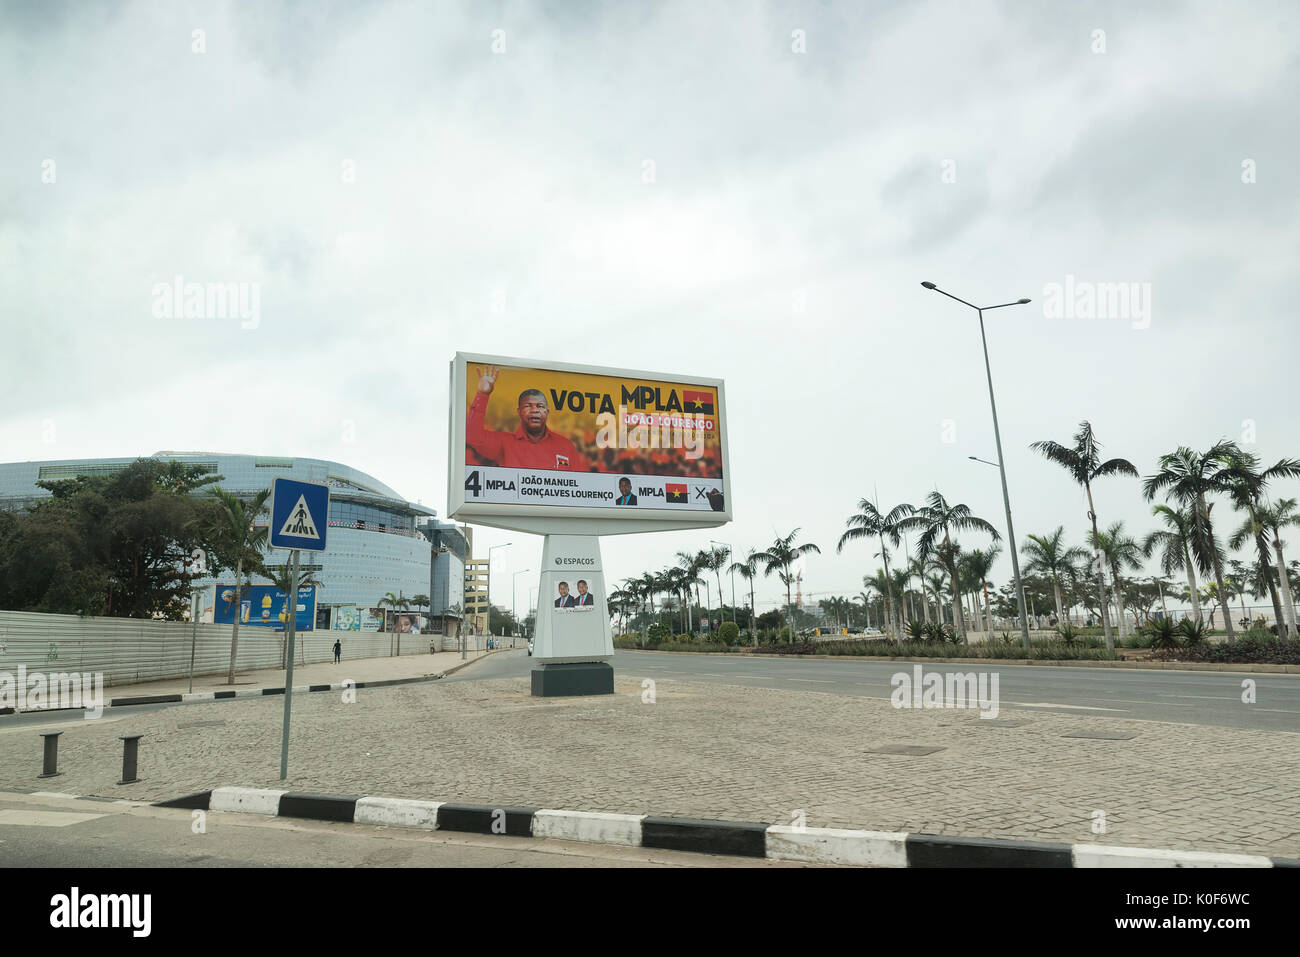 Luanda, Angola. 23rd August, 2017. A billboard advertises presidential canidate Joao Lourenco. Lourenco is from the ruling People's Movement for the Liberation of Angola (MPLA) party. Credit: Will Reynolds Photography/Alamy Live News - Stock Image